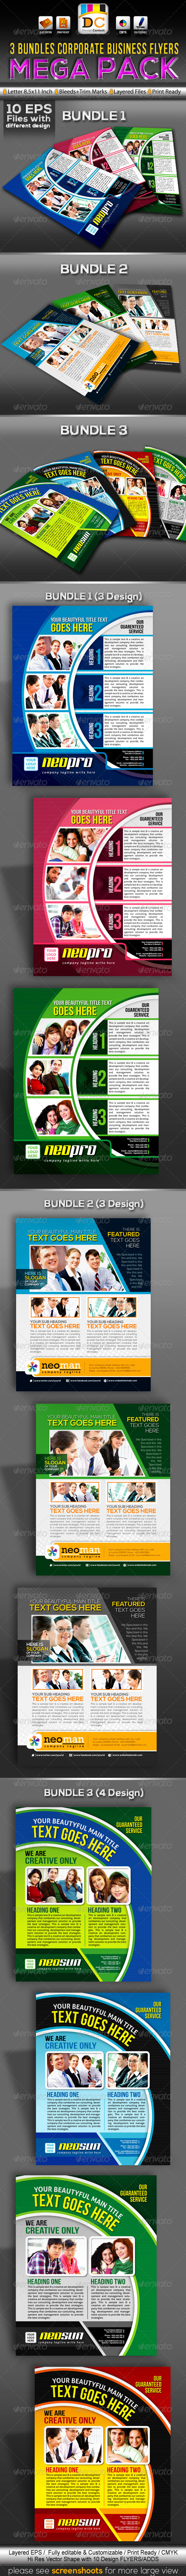 Corporate Business Flyer Mega Bundle Pack - Corporate Flyers